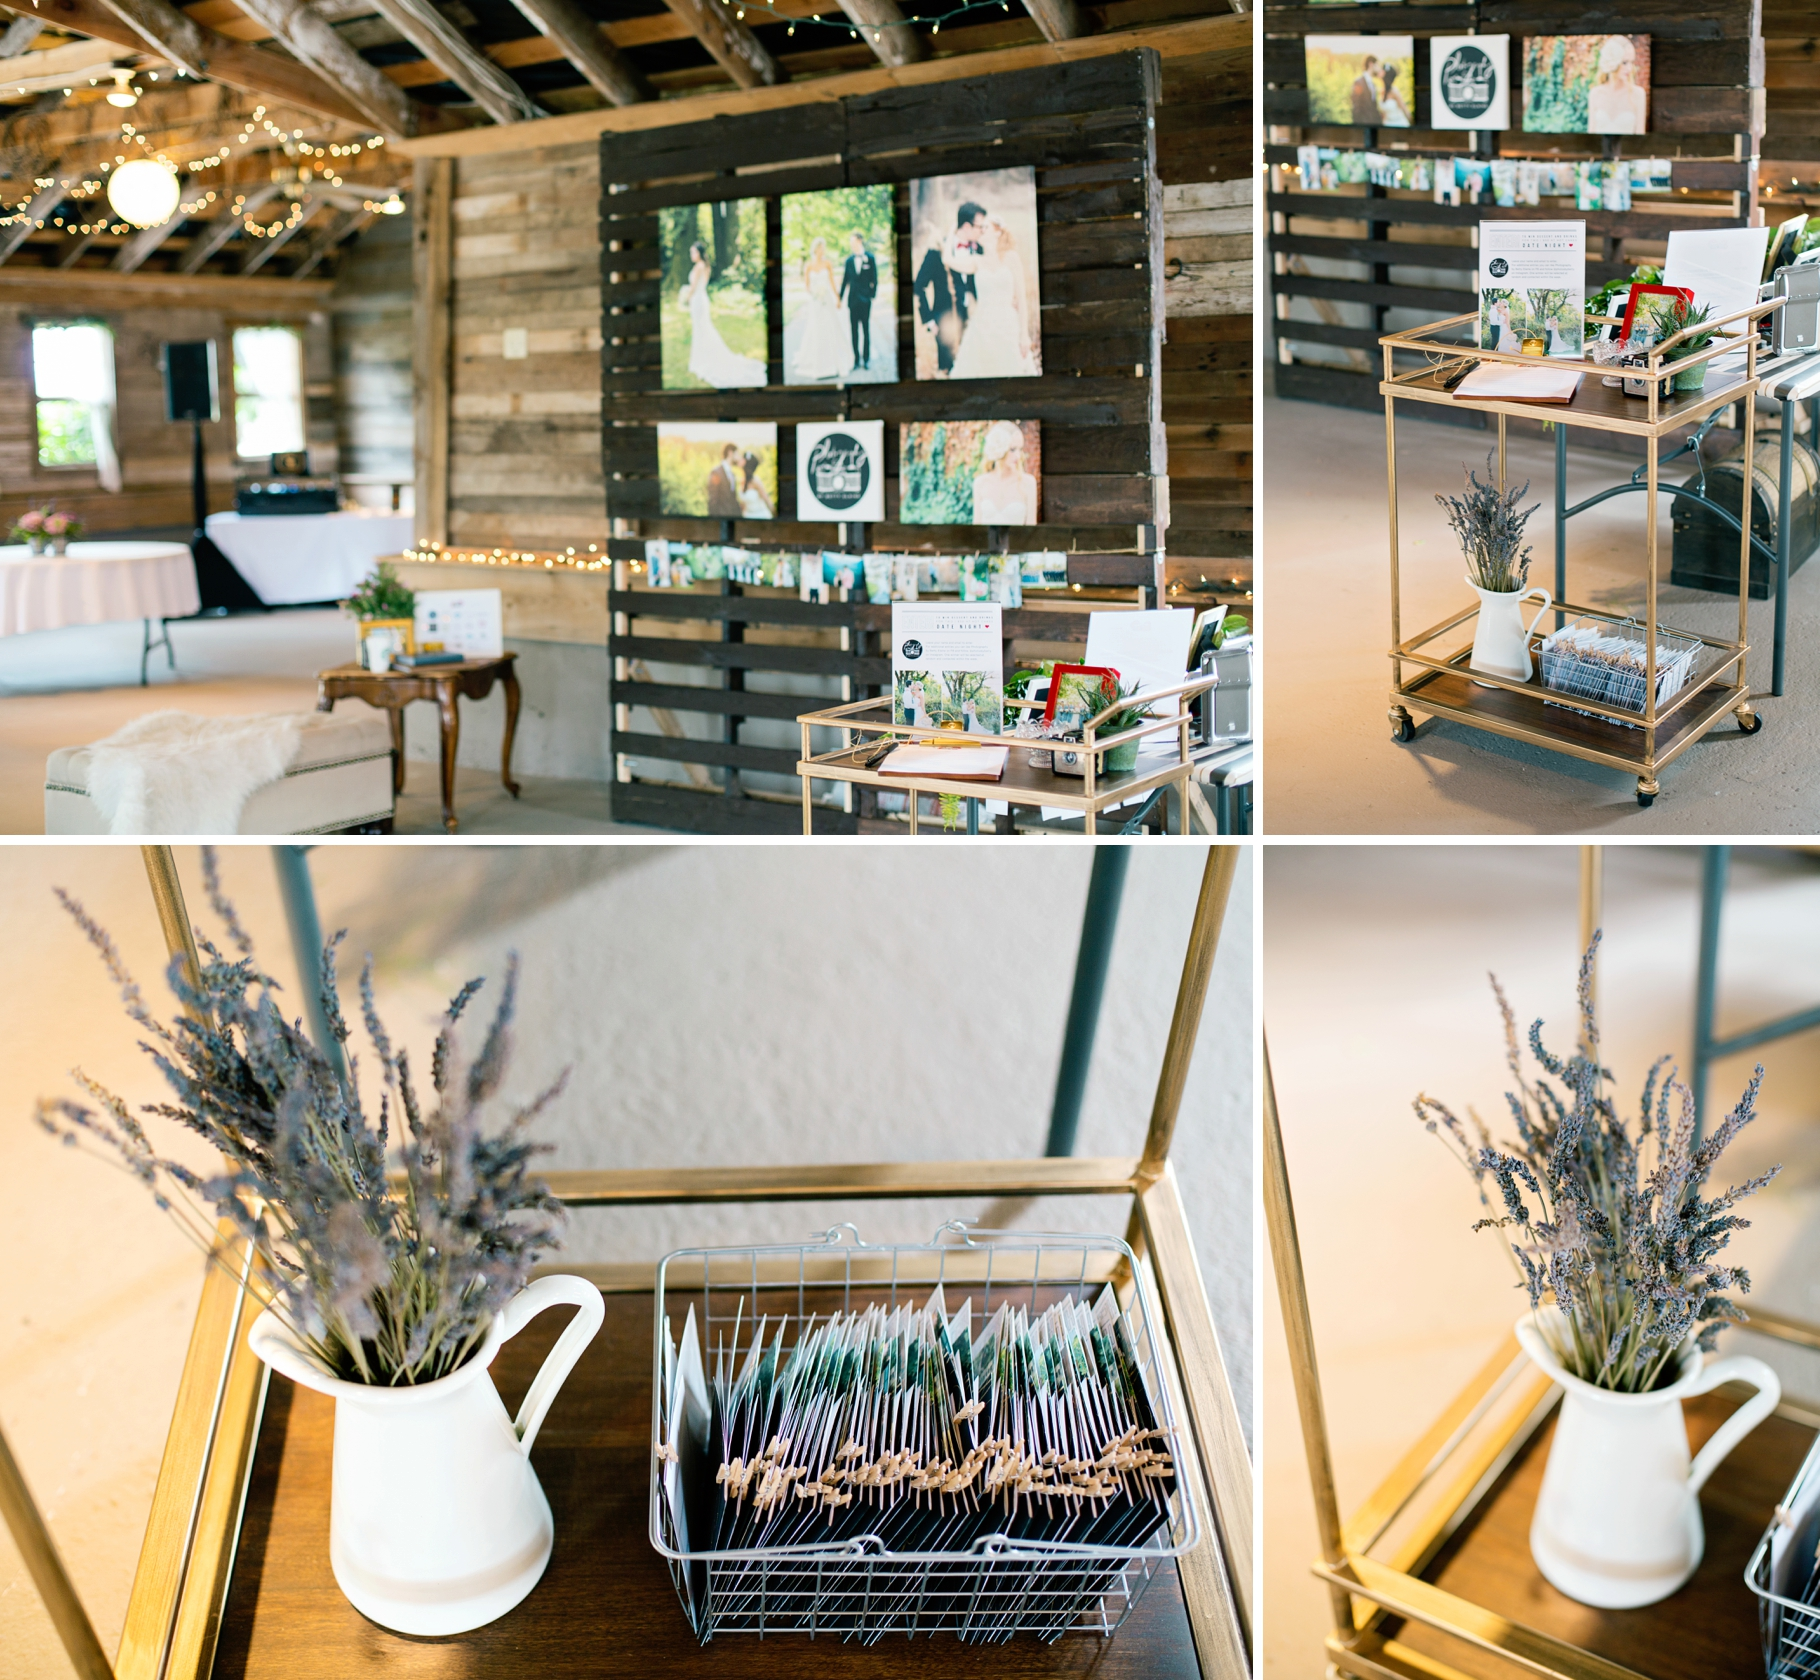 17-Craven-Farm-Pallet-Gallery-Display-Snohomish-Wedding-Tour-Seattle-Photographer-Photography-by-Betty-Elaine